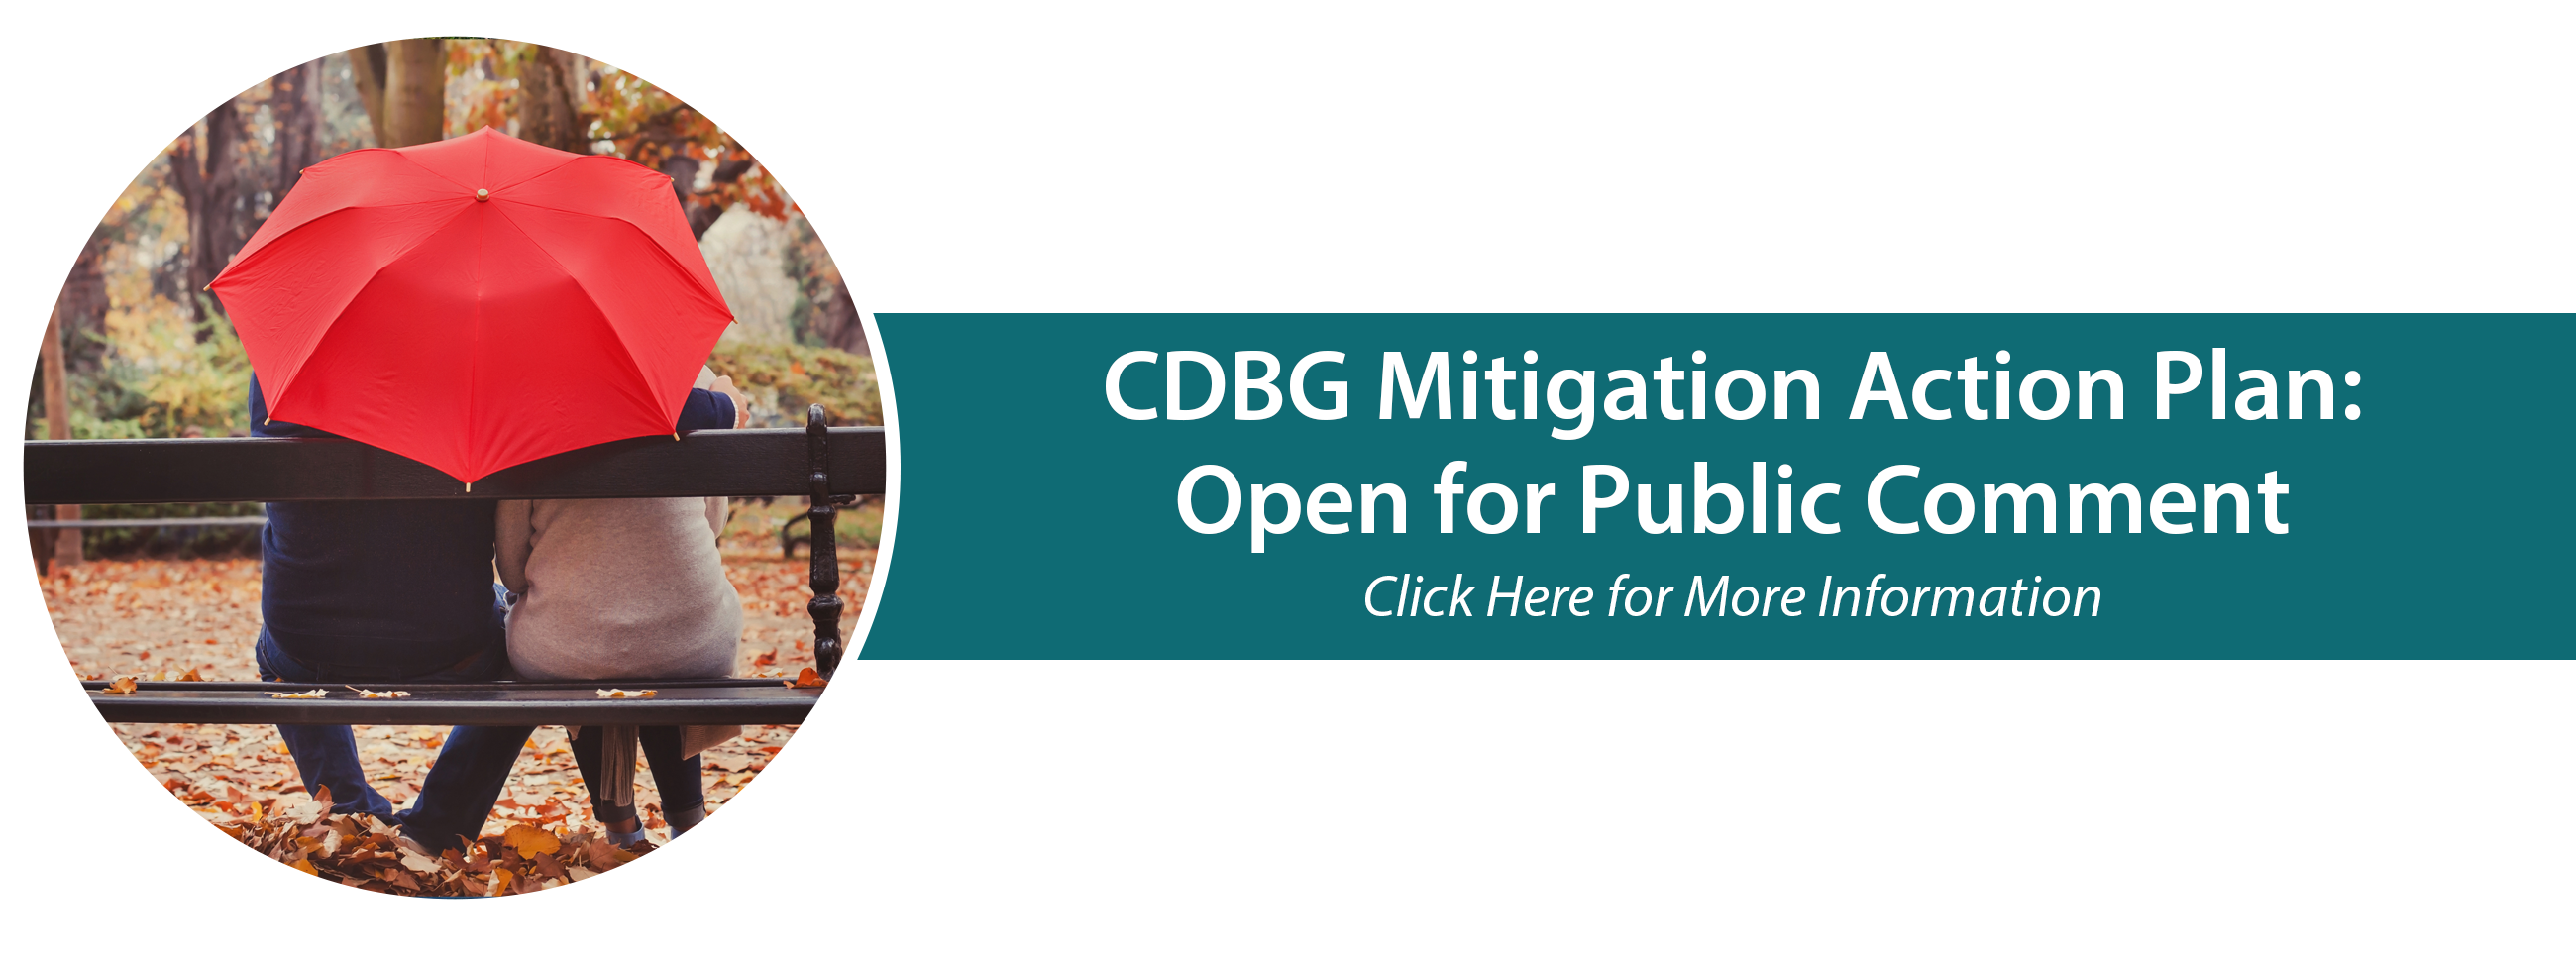 Click here to see the Mitigation Action Plan